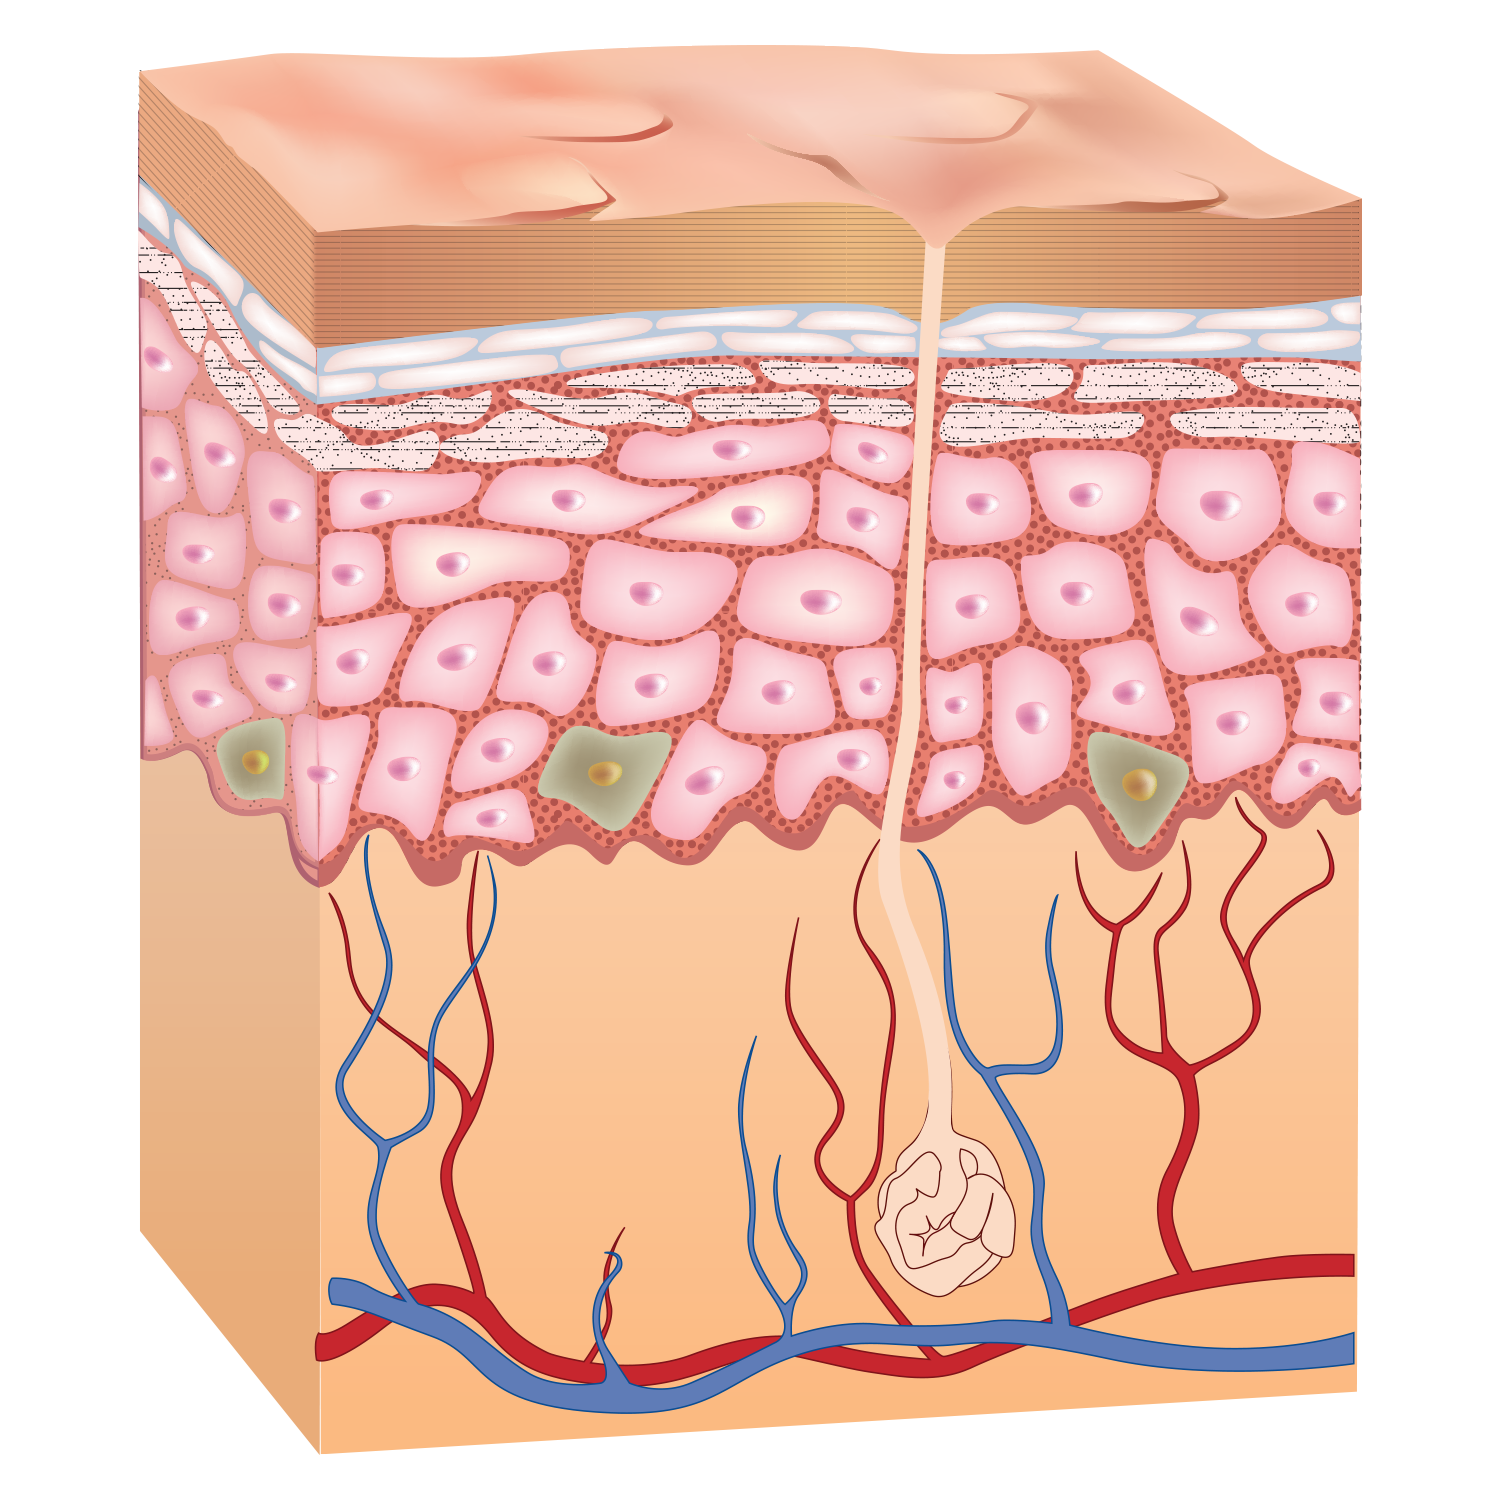 Intergumentary on emaze the. Skin clipart integumentary system